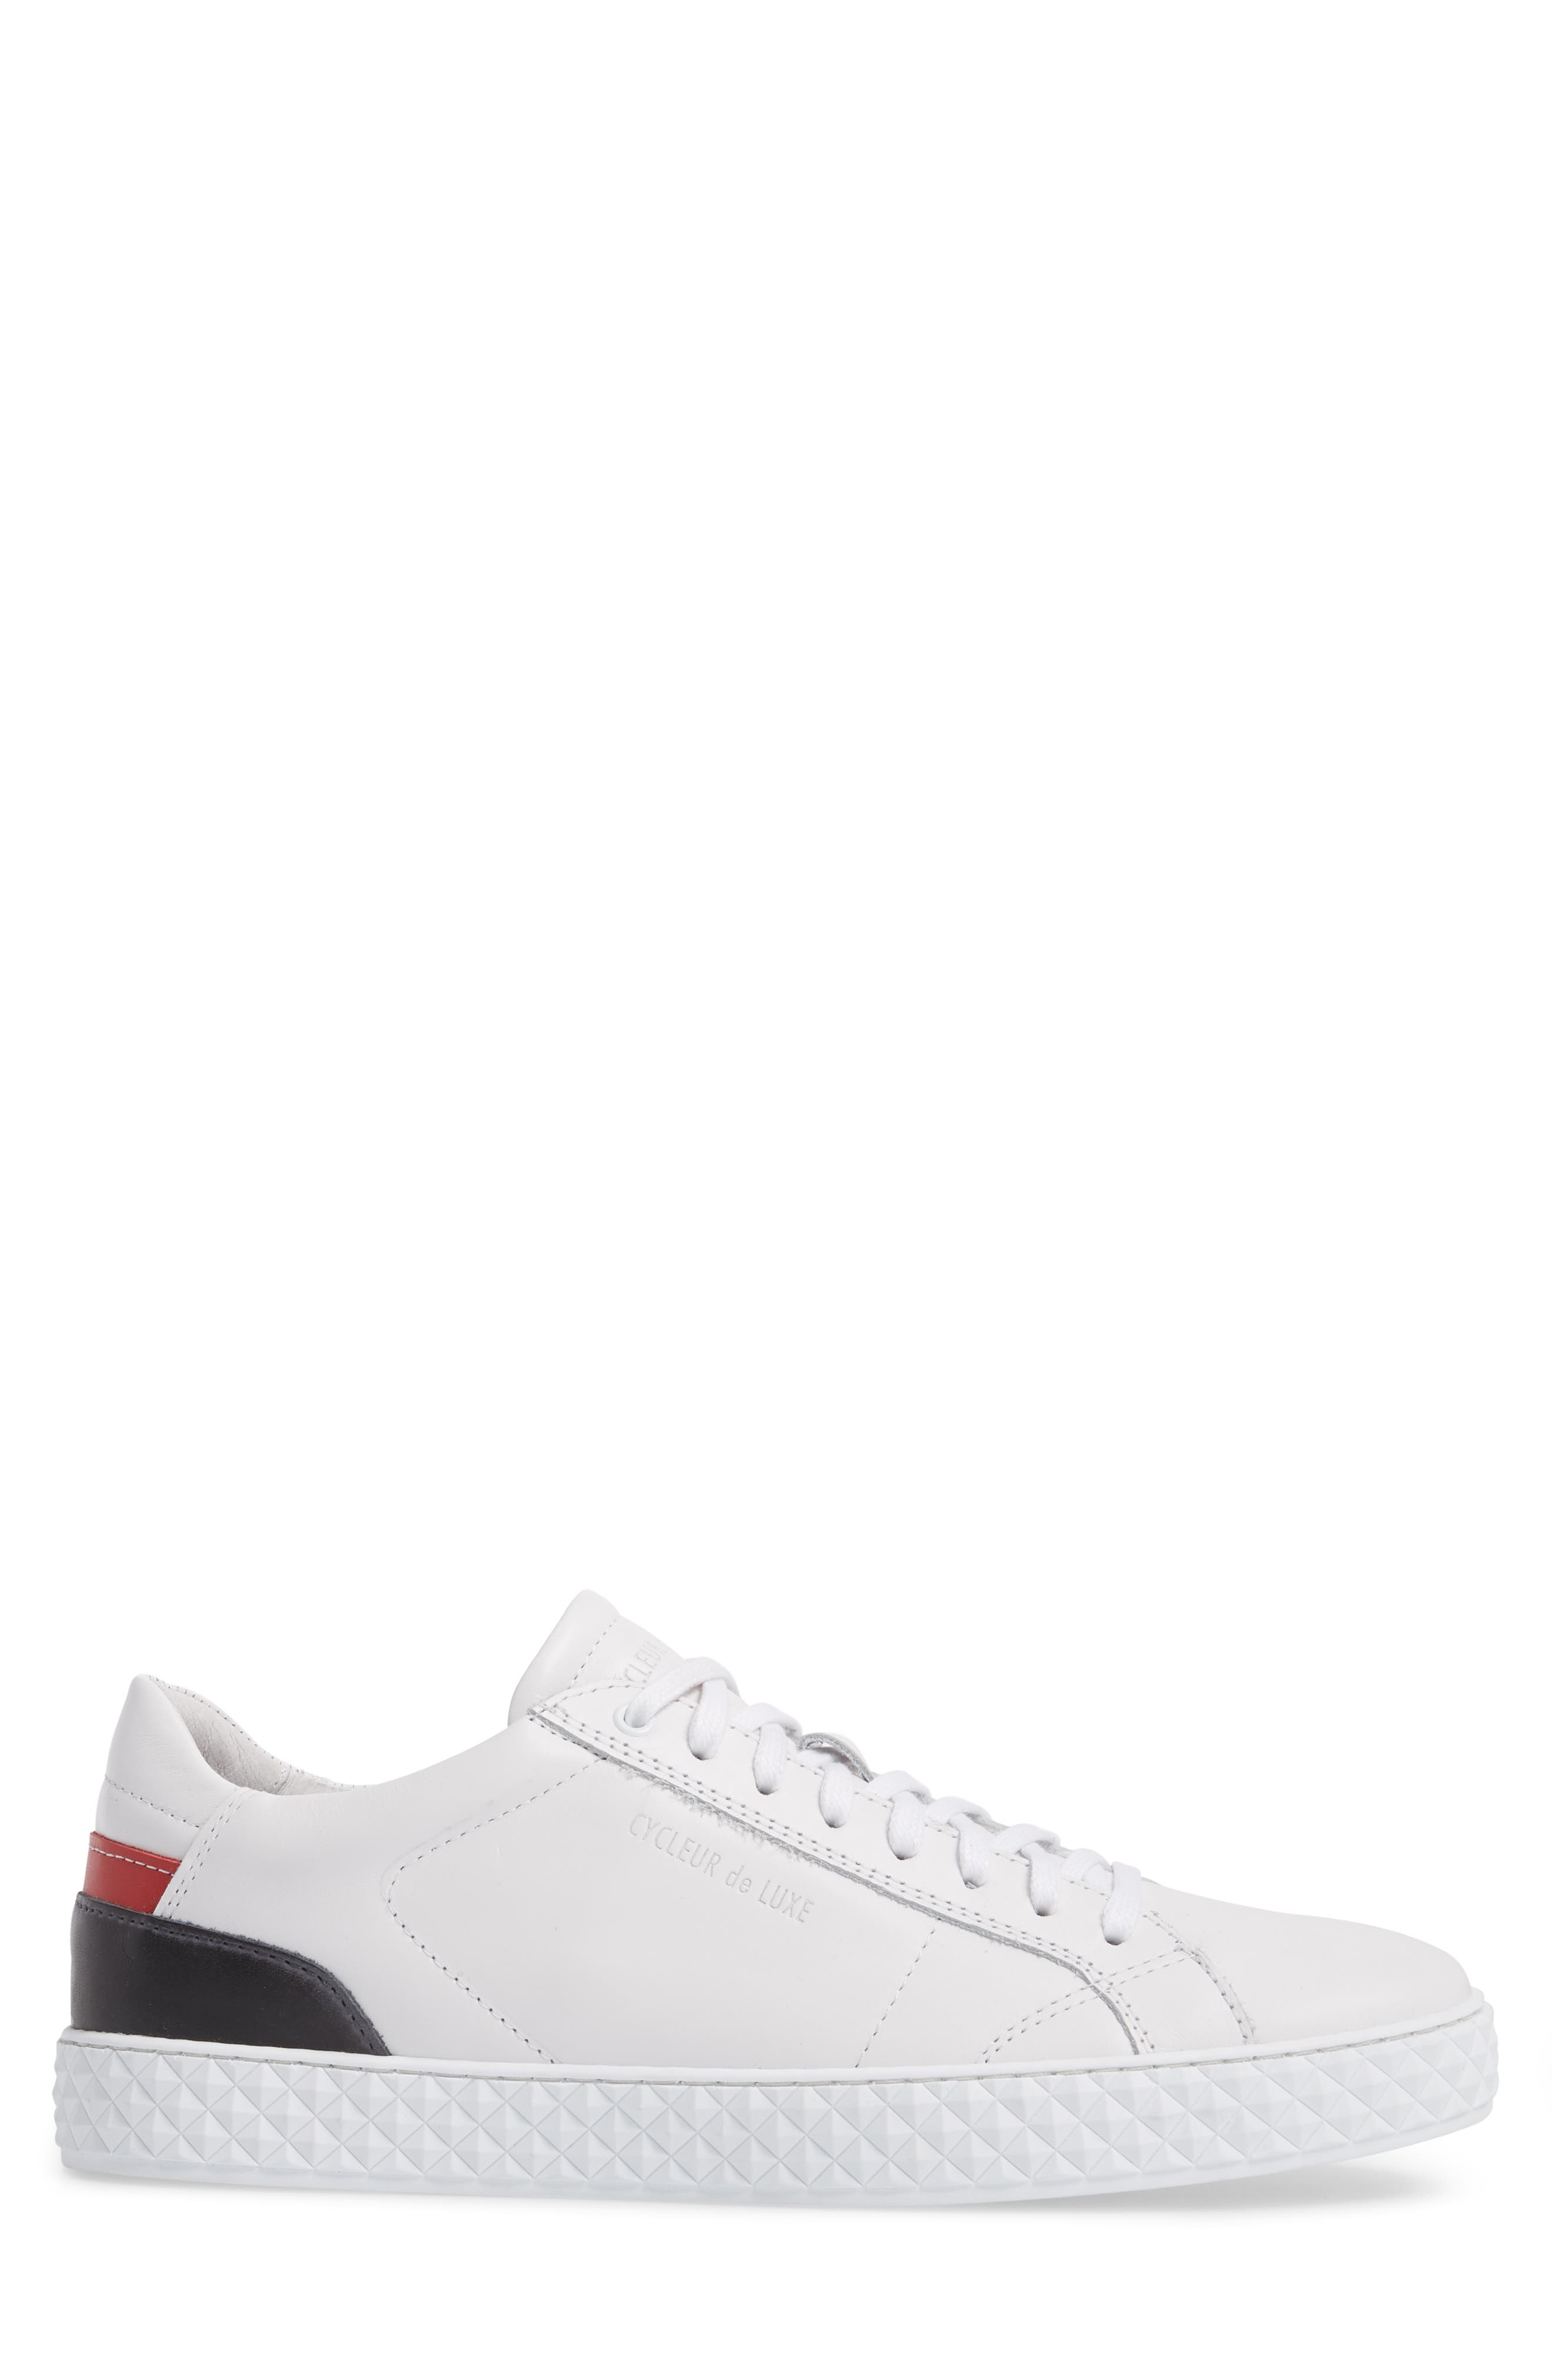 Bratislava Low Top Sneaker,                             Alternate thumbnail 3, color,                             OPTIC WHITE/ RED/ NAVY LEATHER